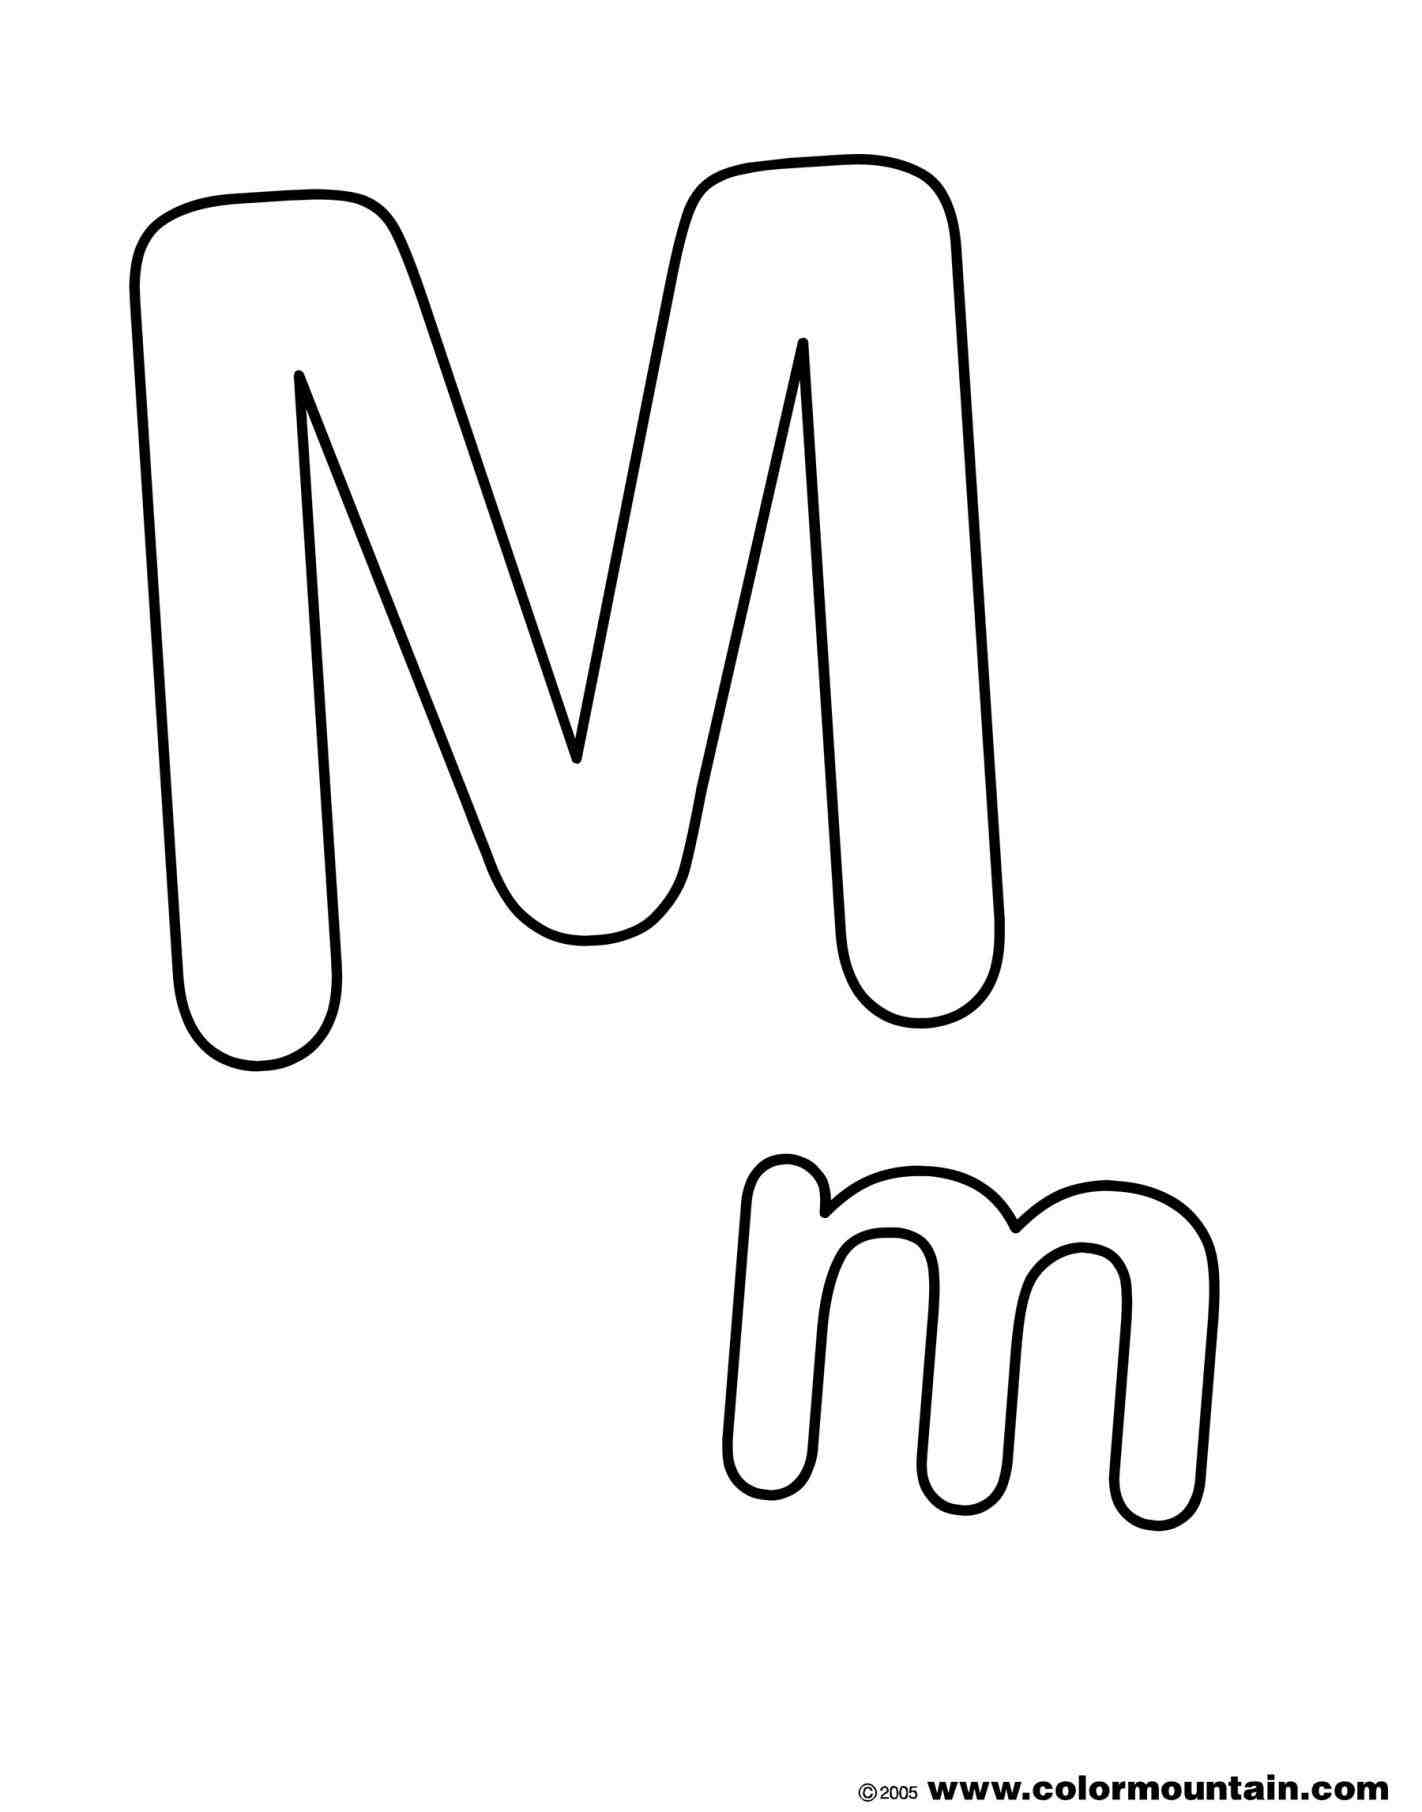 how to make a bubble letter m | weeklyplanner.website